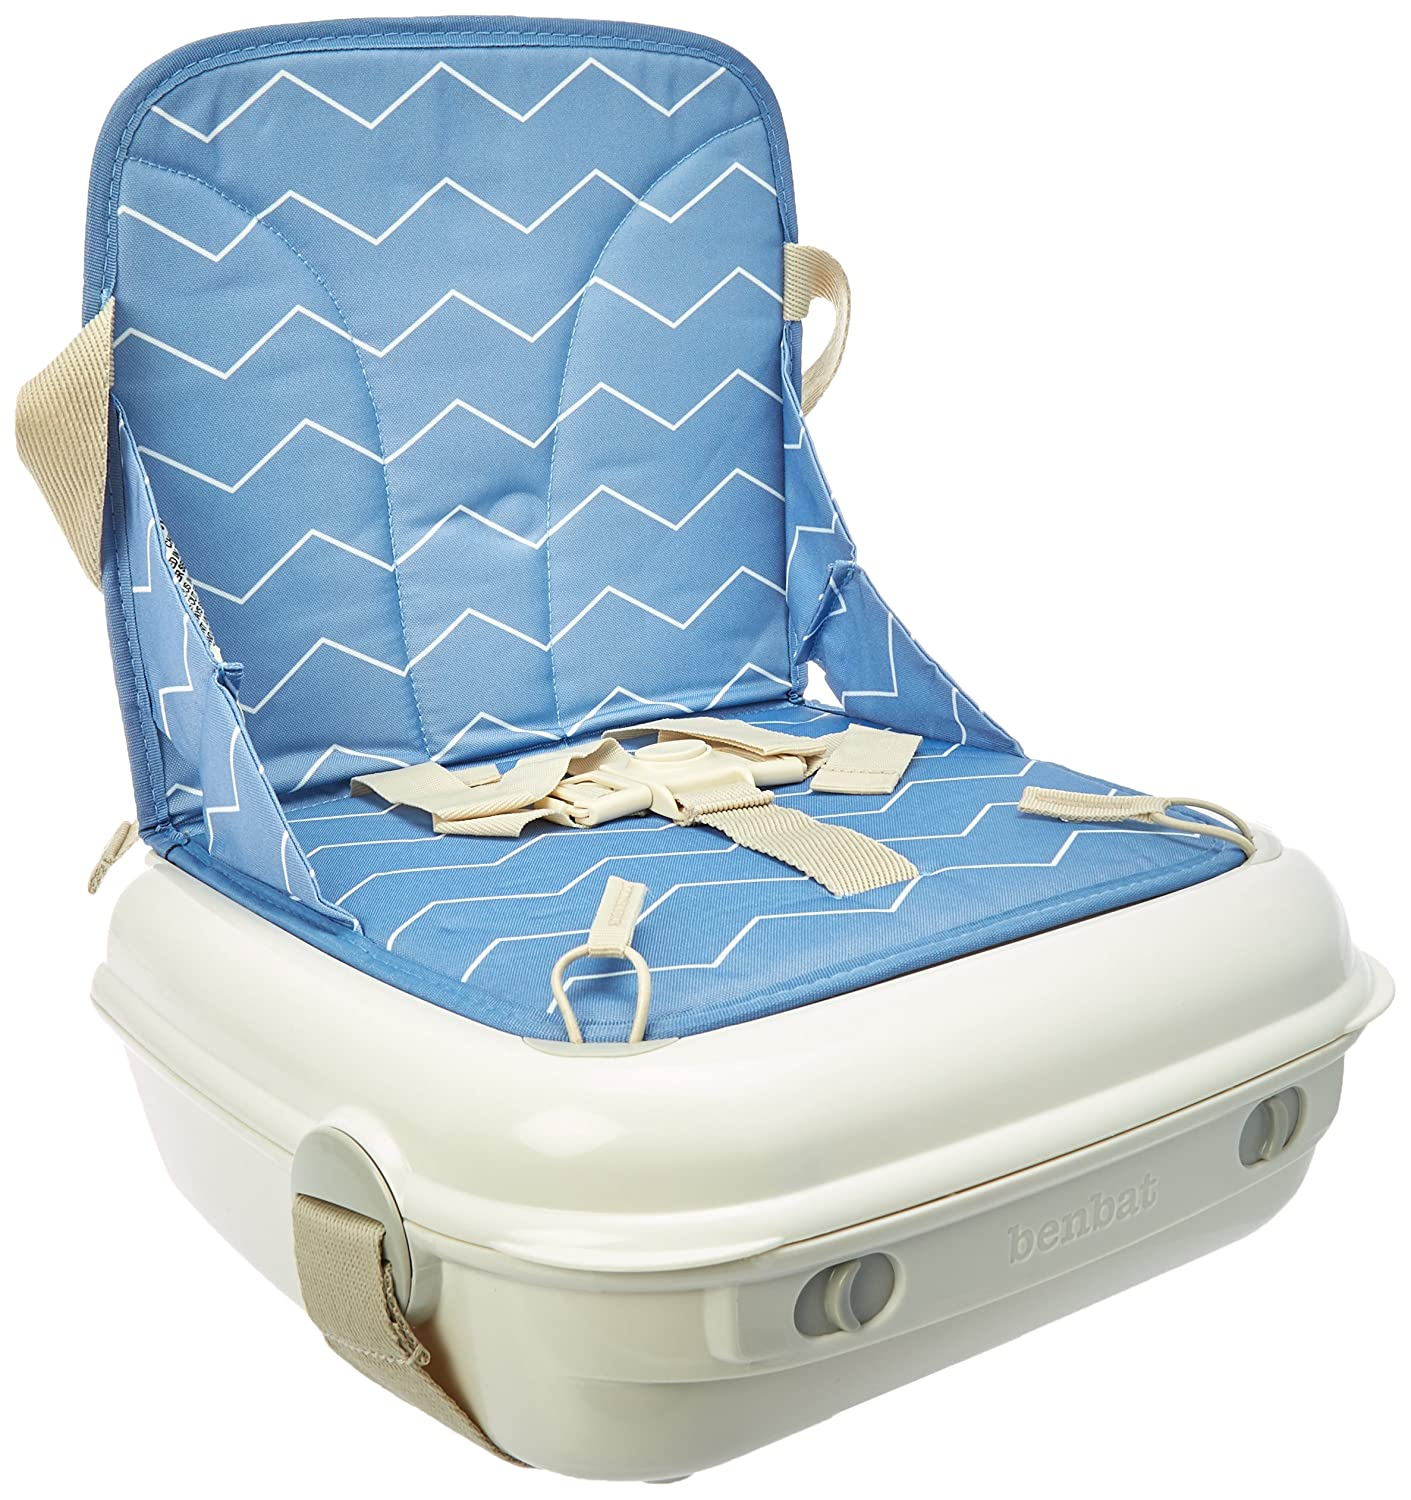 Benbat Yummigo Booster Seat, White & Blue BE-BO510